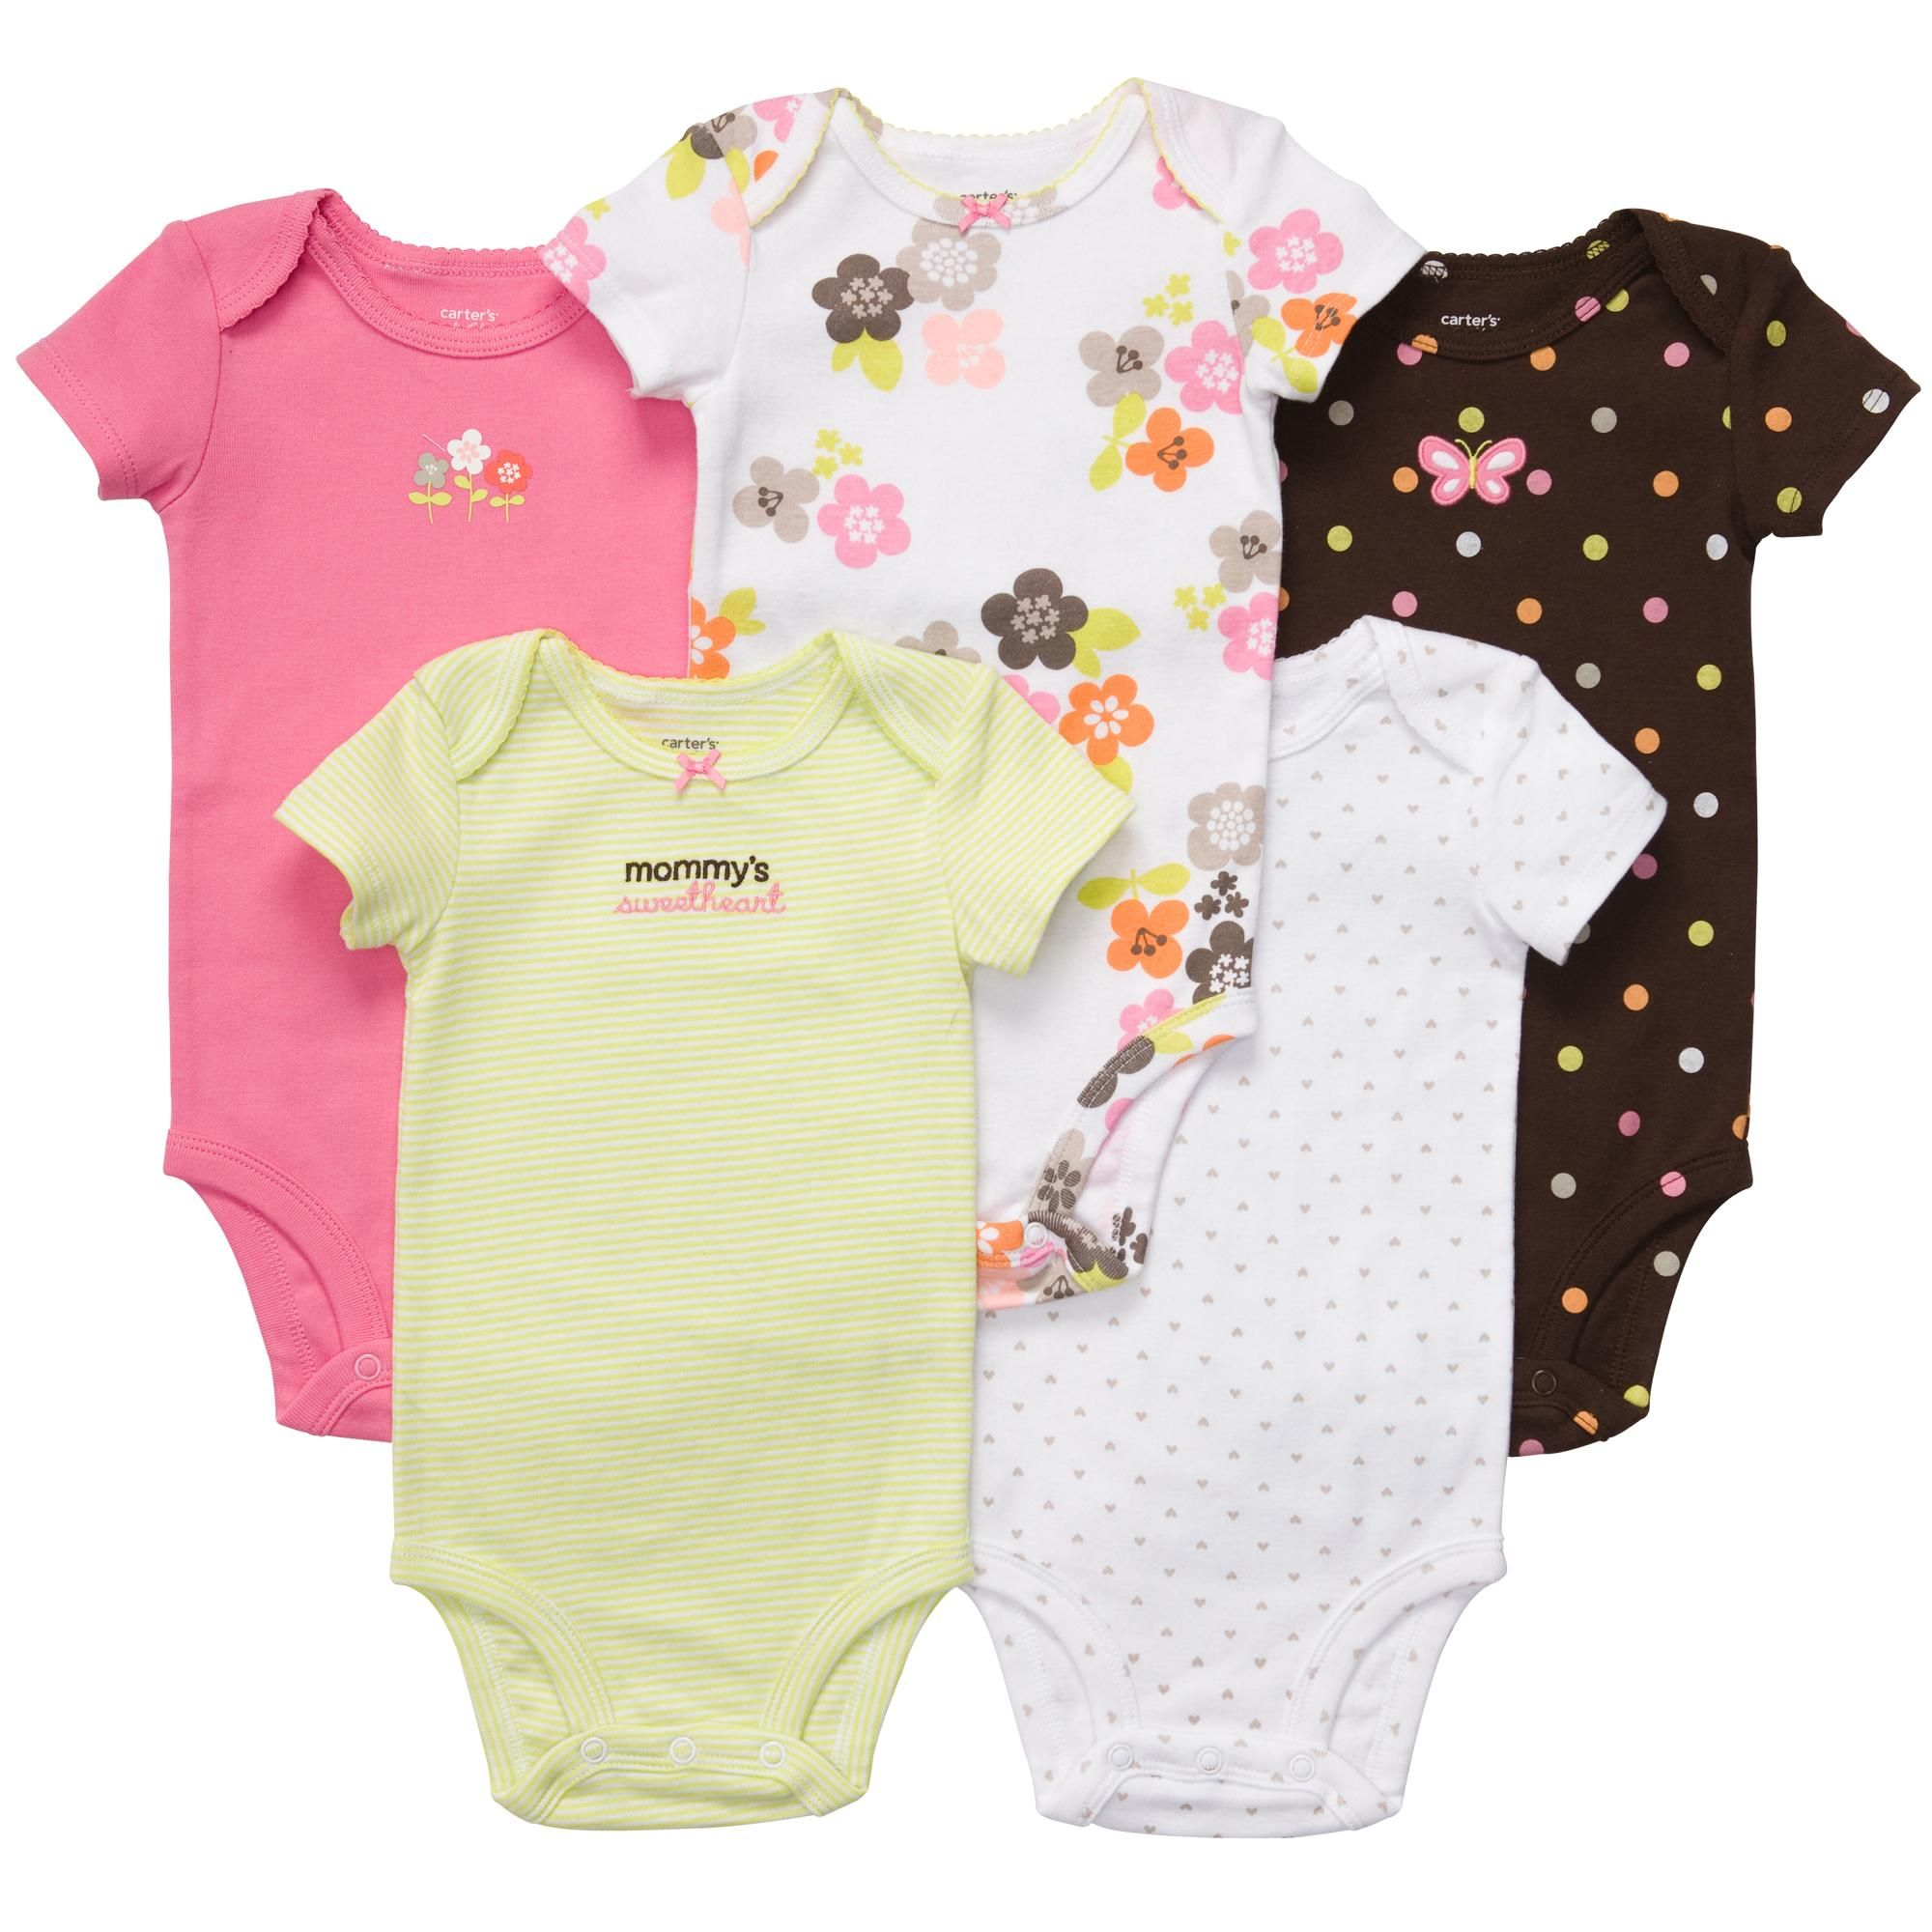 745b059a43d09 Short Sleeve 5-Pack Bodysuits from carter's $13 (don't love the ...